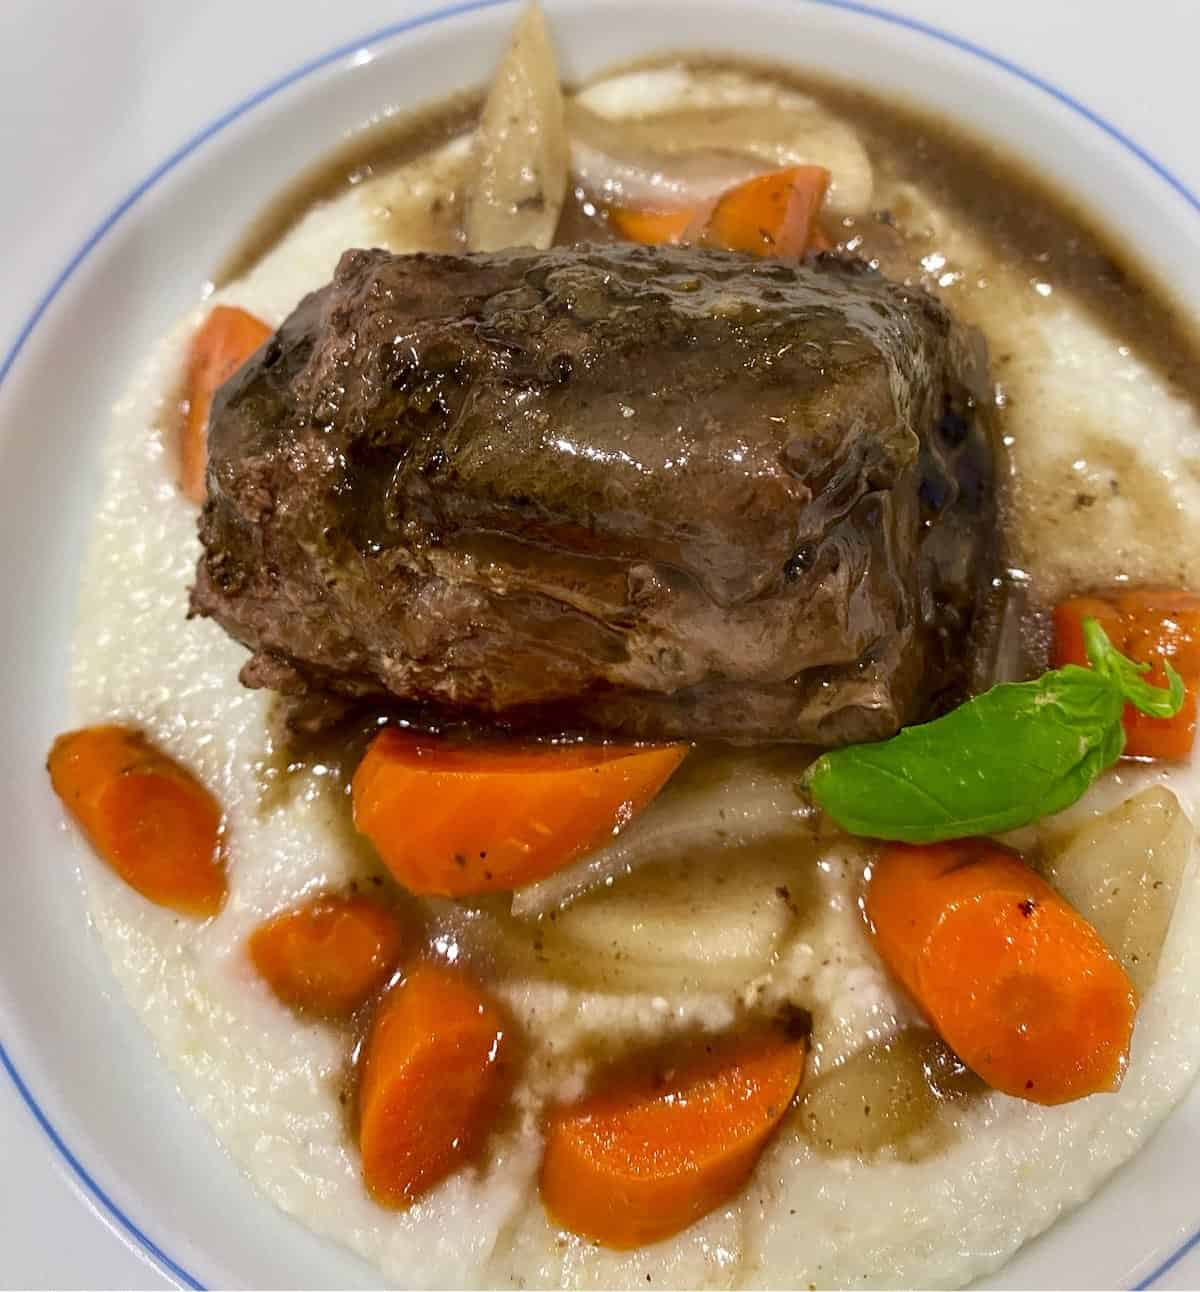 kitchen renovation no reservation needed with sous vide short ribs, carrots and grits made at home